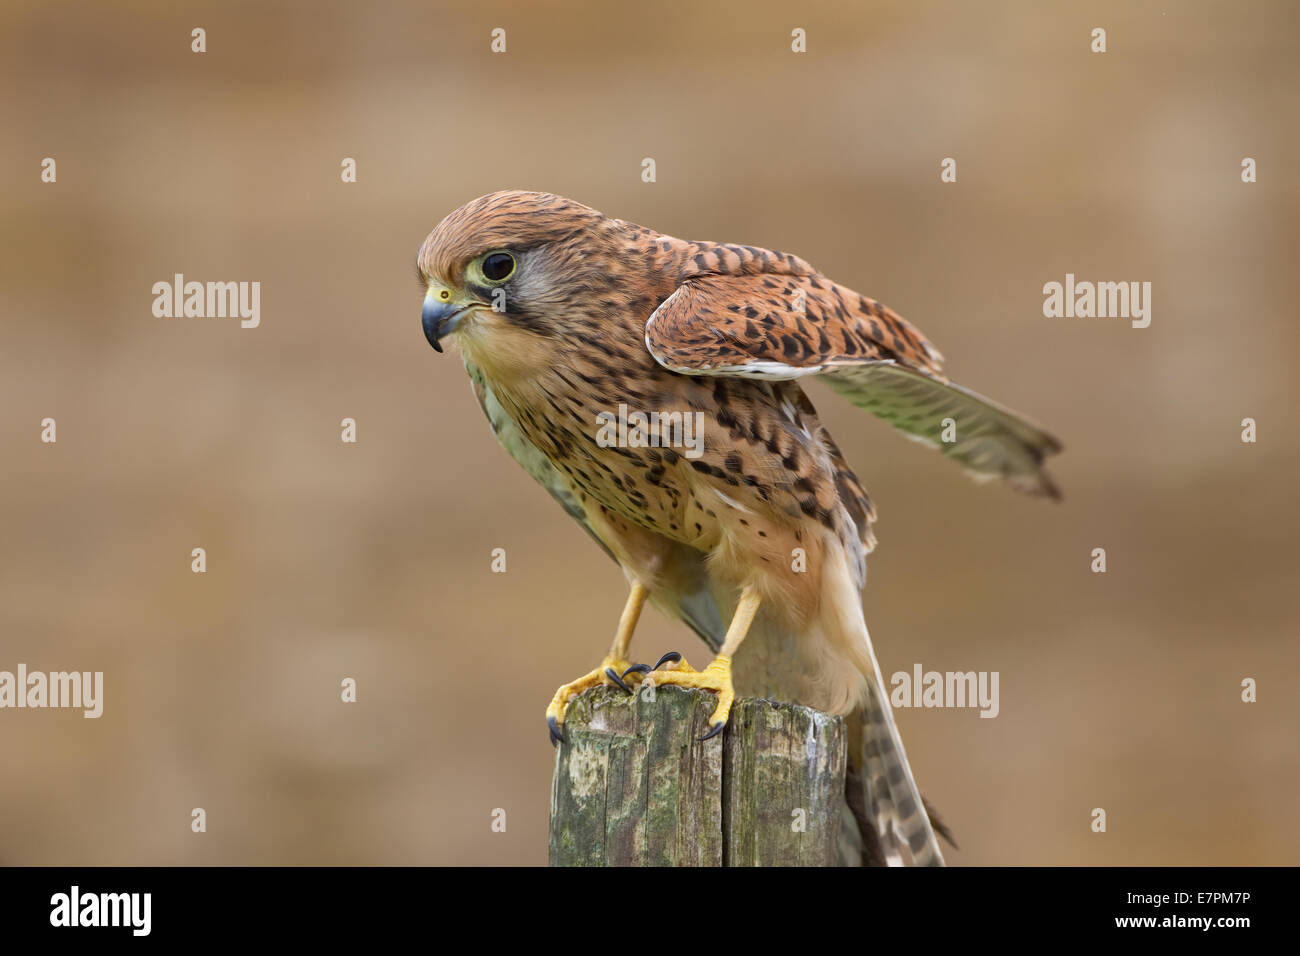 Kestrel female Falco Tinnunculus perched on a wooden stake and taken under controlled conditions - Stock Image